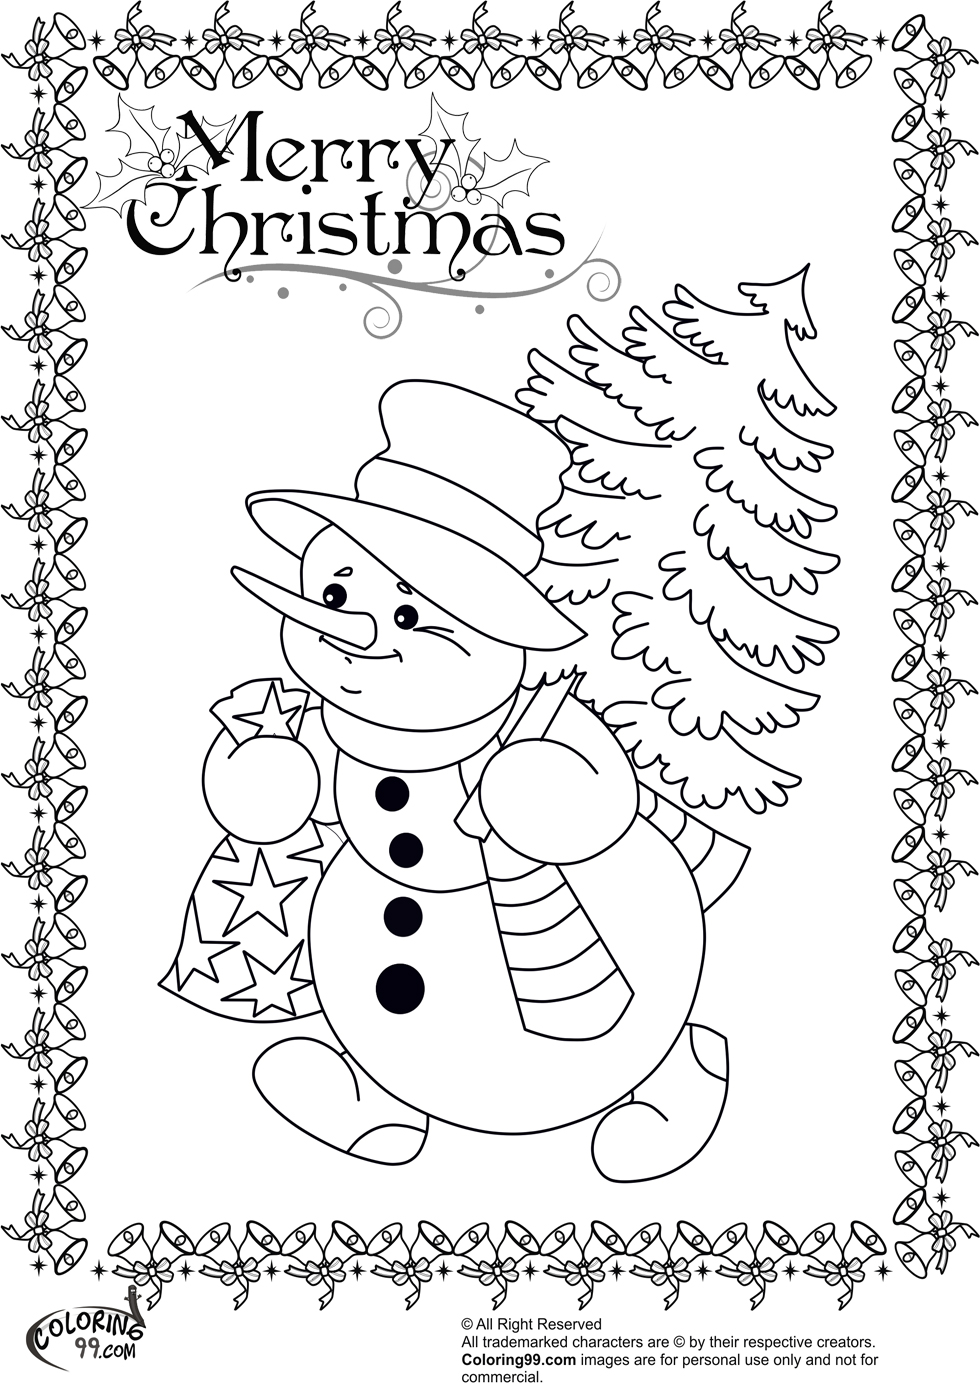 Snowman coloring pages team colors for Coloring pages of snowman